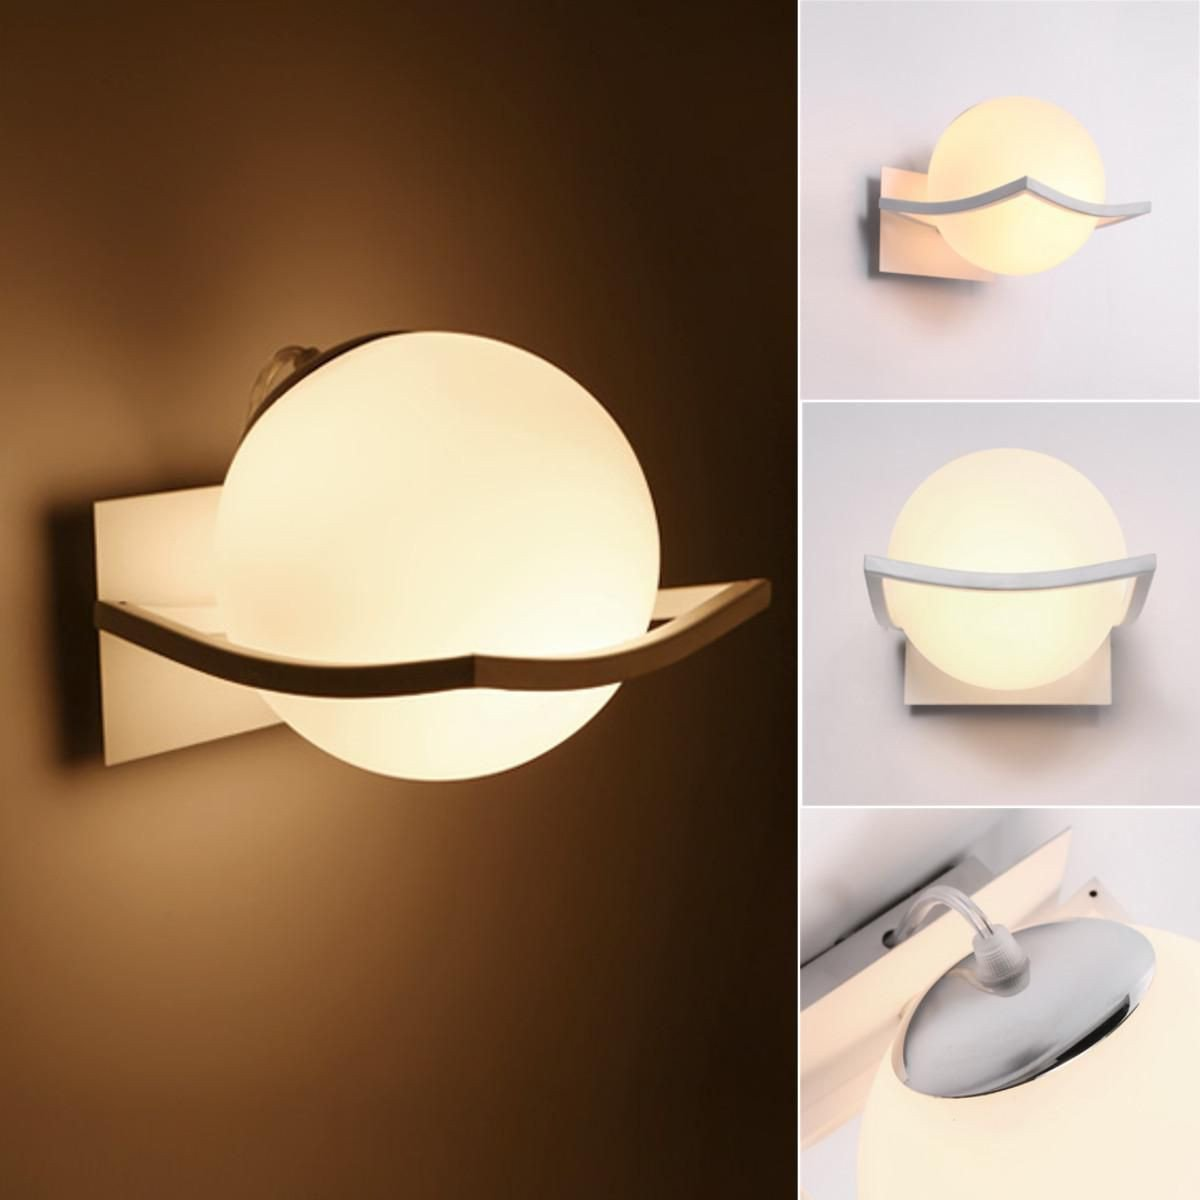 Cool Lamps for Bedroom Inspirational Led Spherical Glass Wall Lamp Front Light Bedroom Bedside